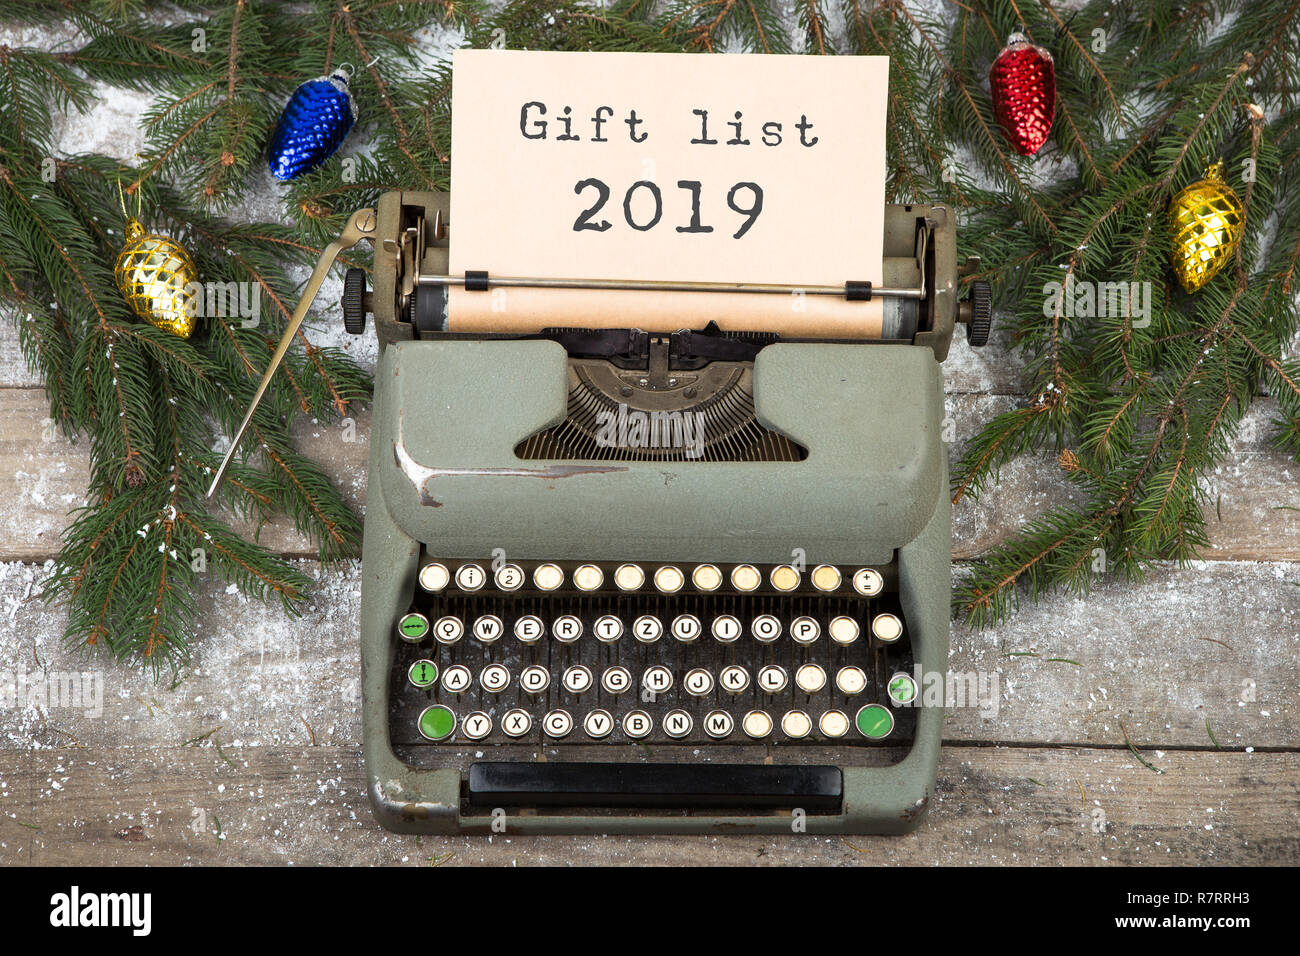 Christmas List 2019.Christmas Concept Typewriter With Text Gift List 2019